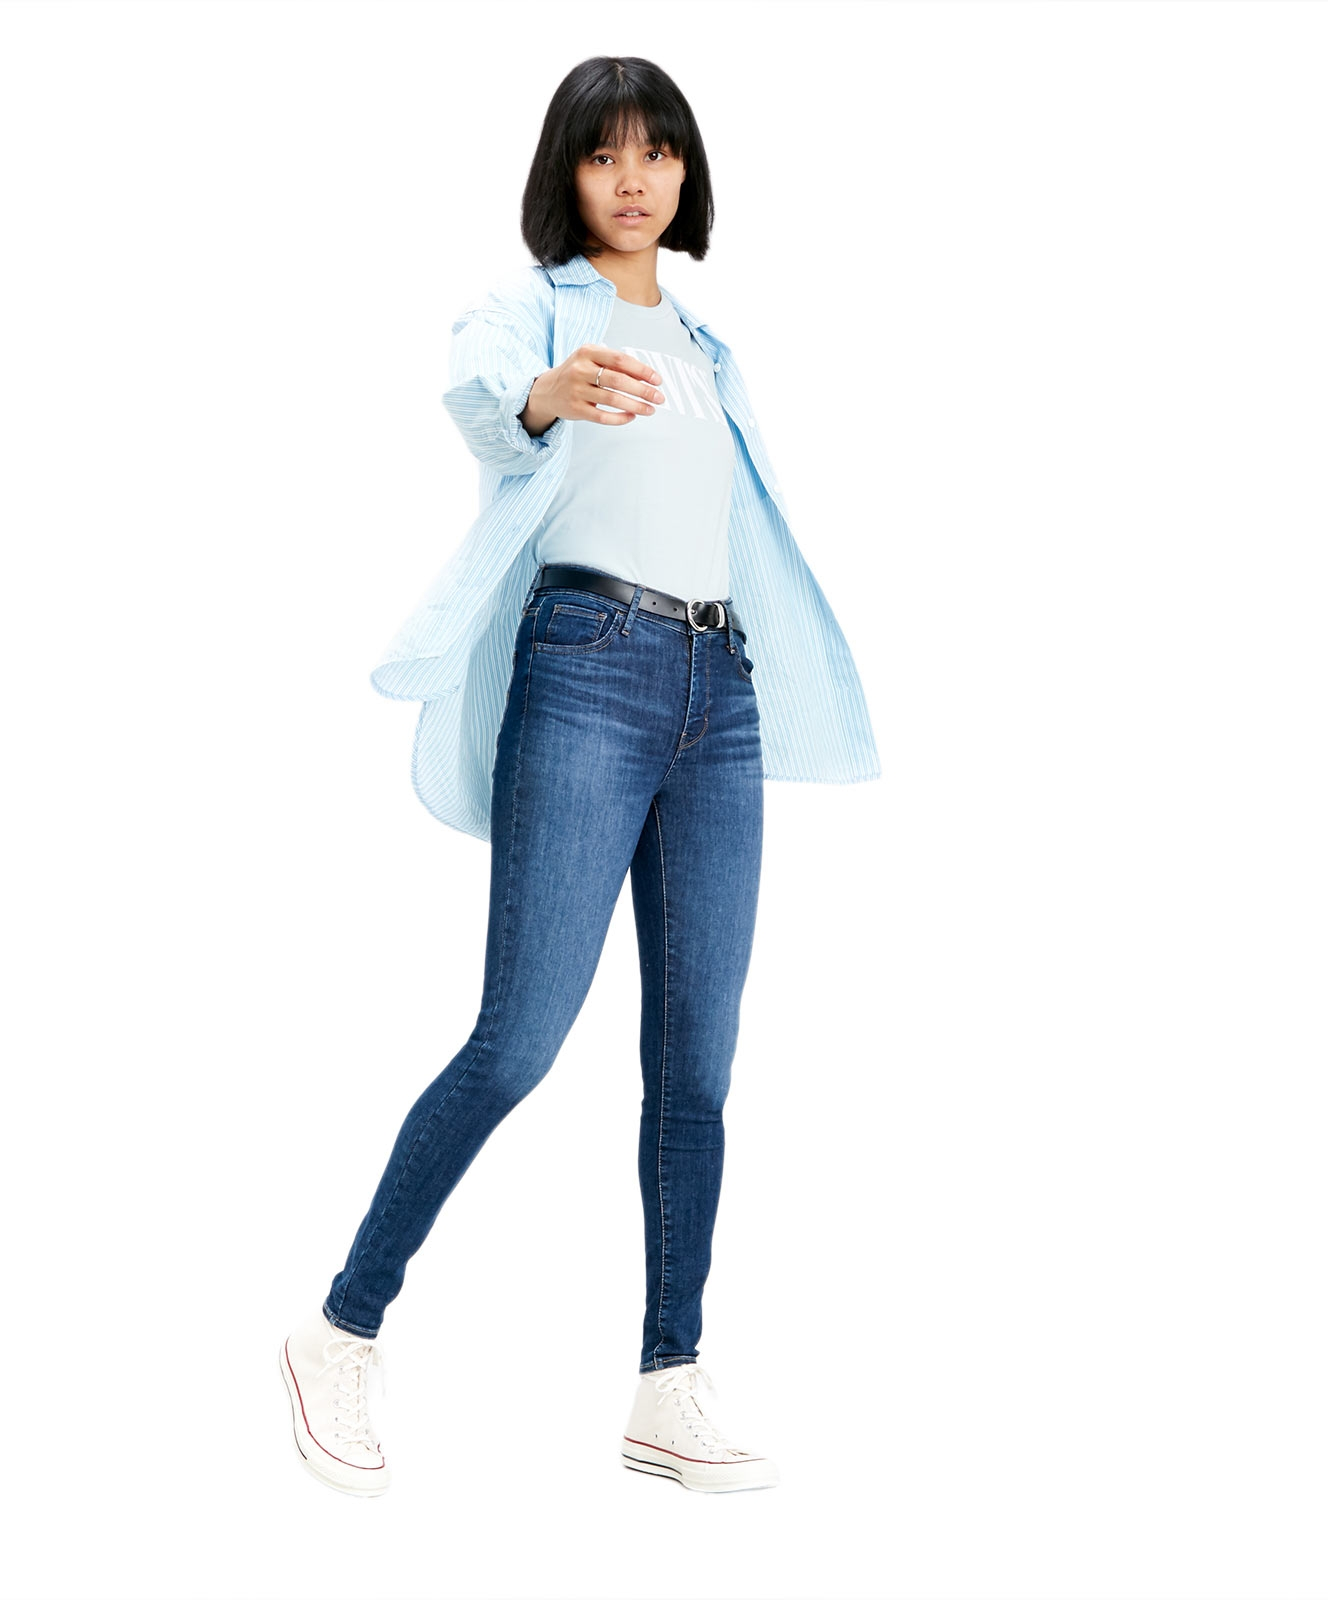 Hosen - Levis High Rise Super Skinny Jeans 720 in Mittelblau  - Onlineshop Jeans Meile